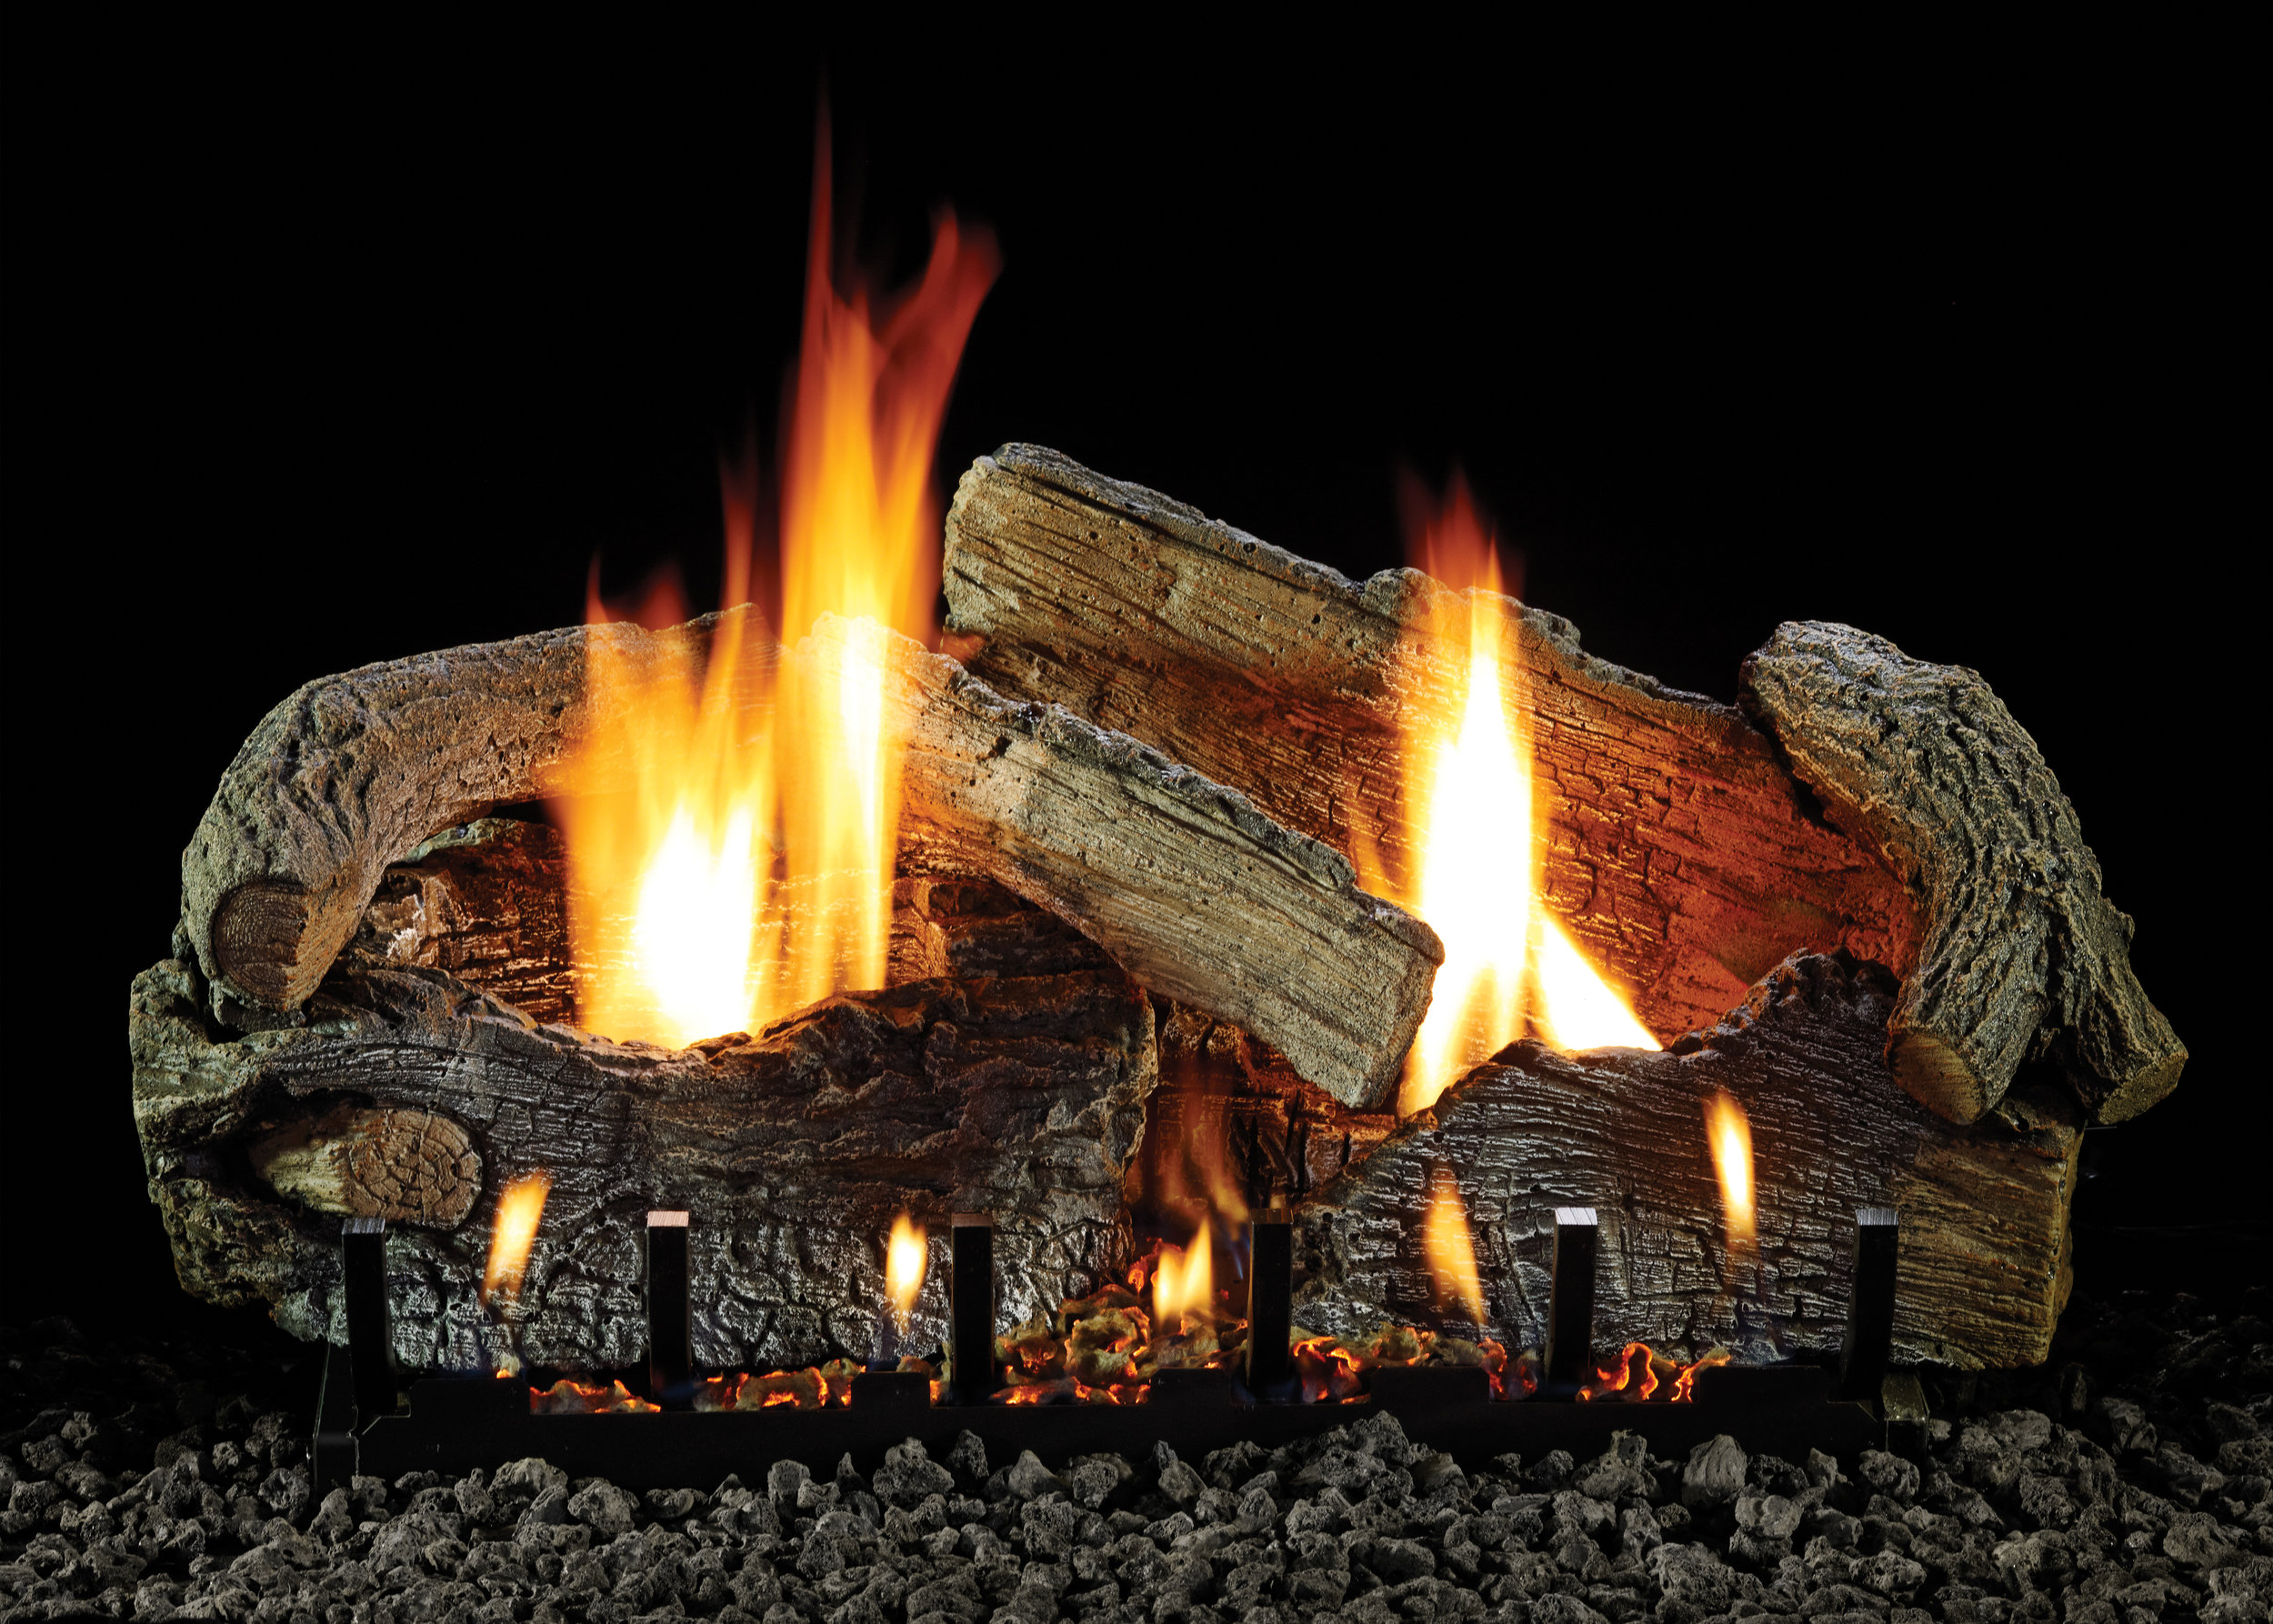 Watch a variety of our gas logs burning…